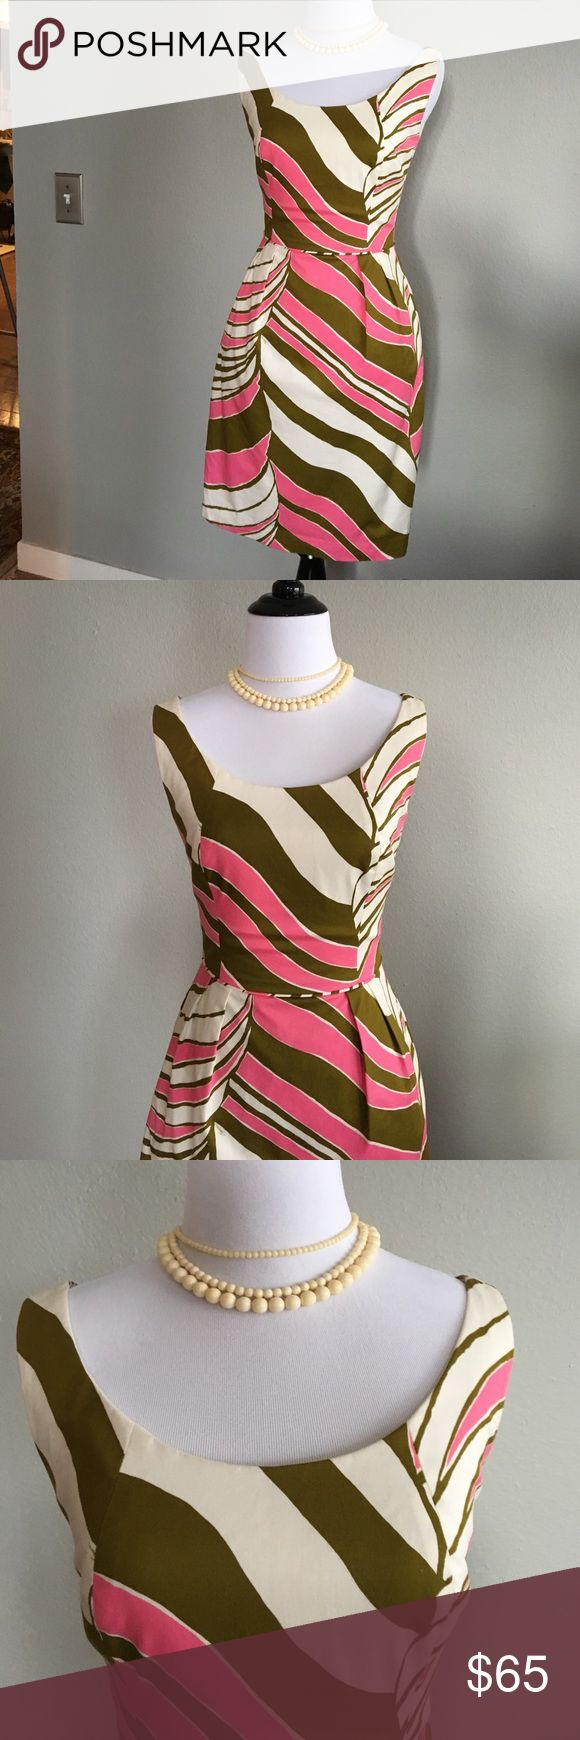 Trina Turk Dress sz 4 pink cream olive Trina Turk Dress sz 4 pink cream and olive. Has pockets and a built in slip. Very nice dress in excellent condition. No damage to note. Worn 1x. Bust = 32.5. Waist = 25.5. There is some stretch to the material. Trina Turk Dresses